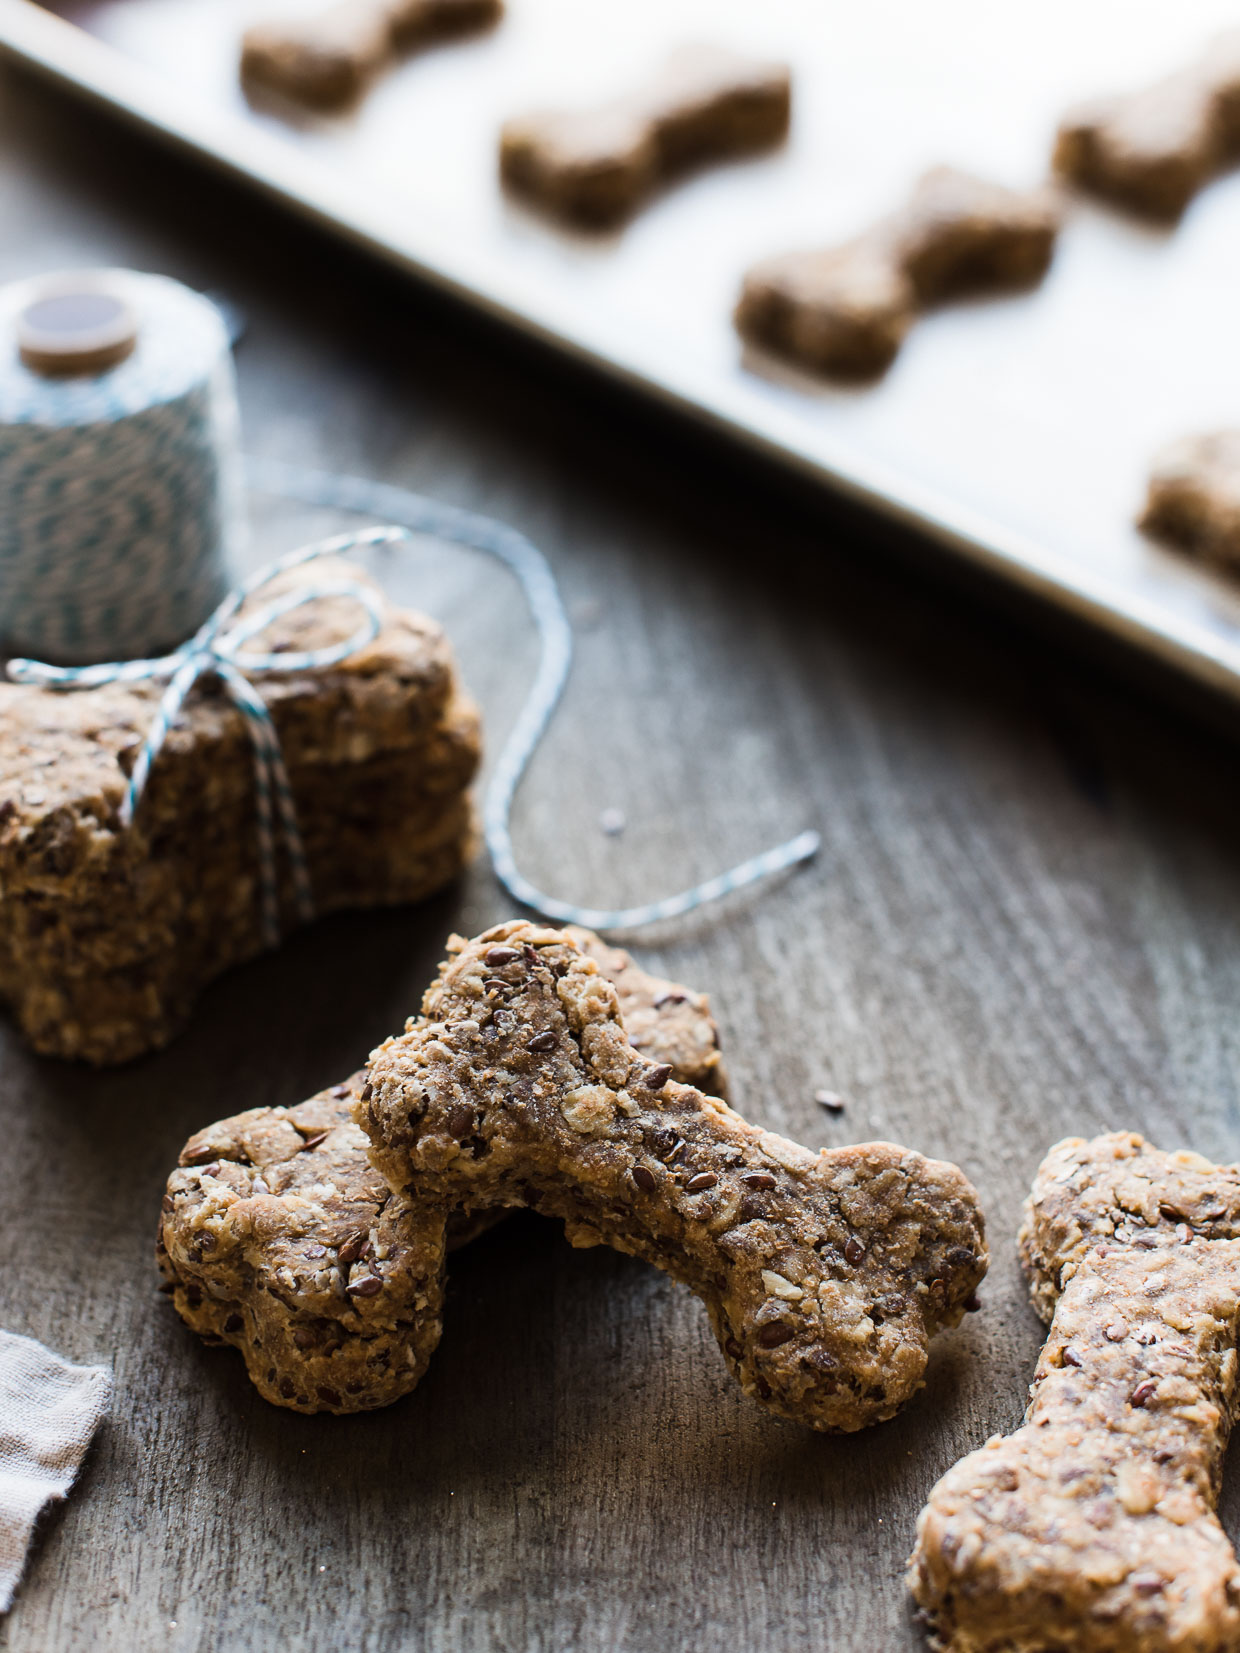 15 Best Homemade Dog Treats Recipes